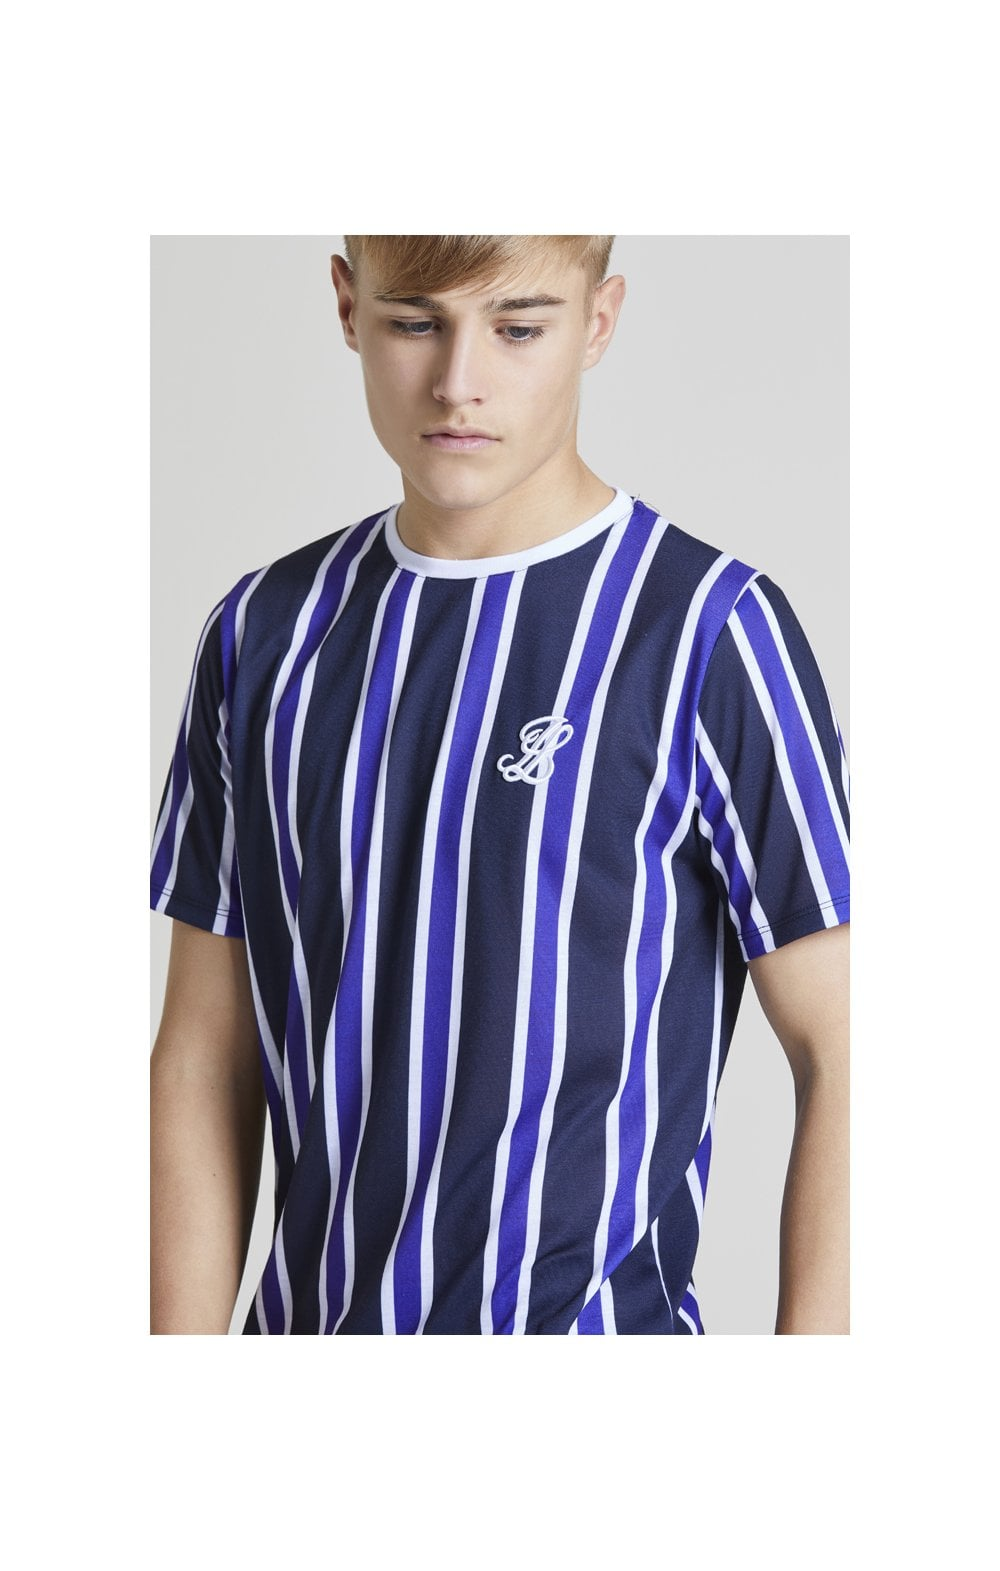 Illusive London Stripe tee - Navy, Purple & White